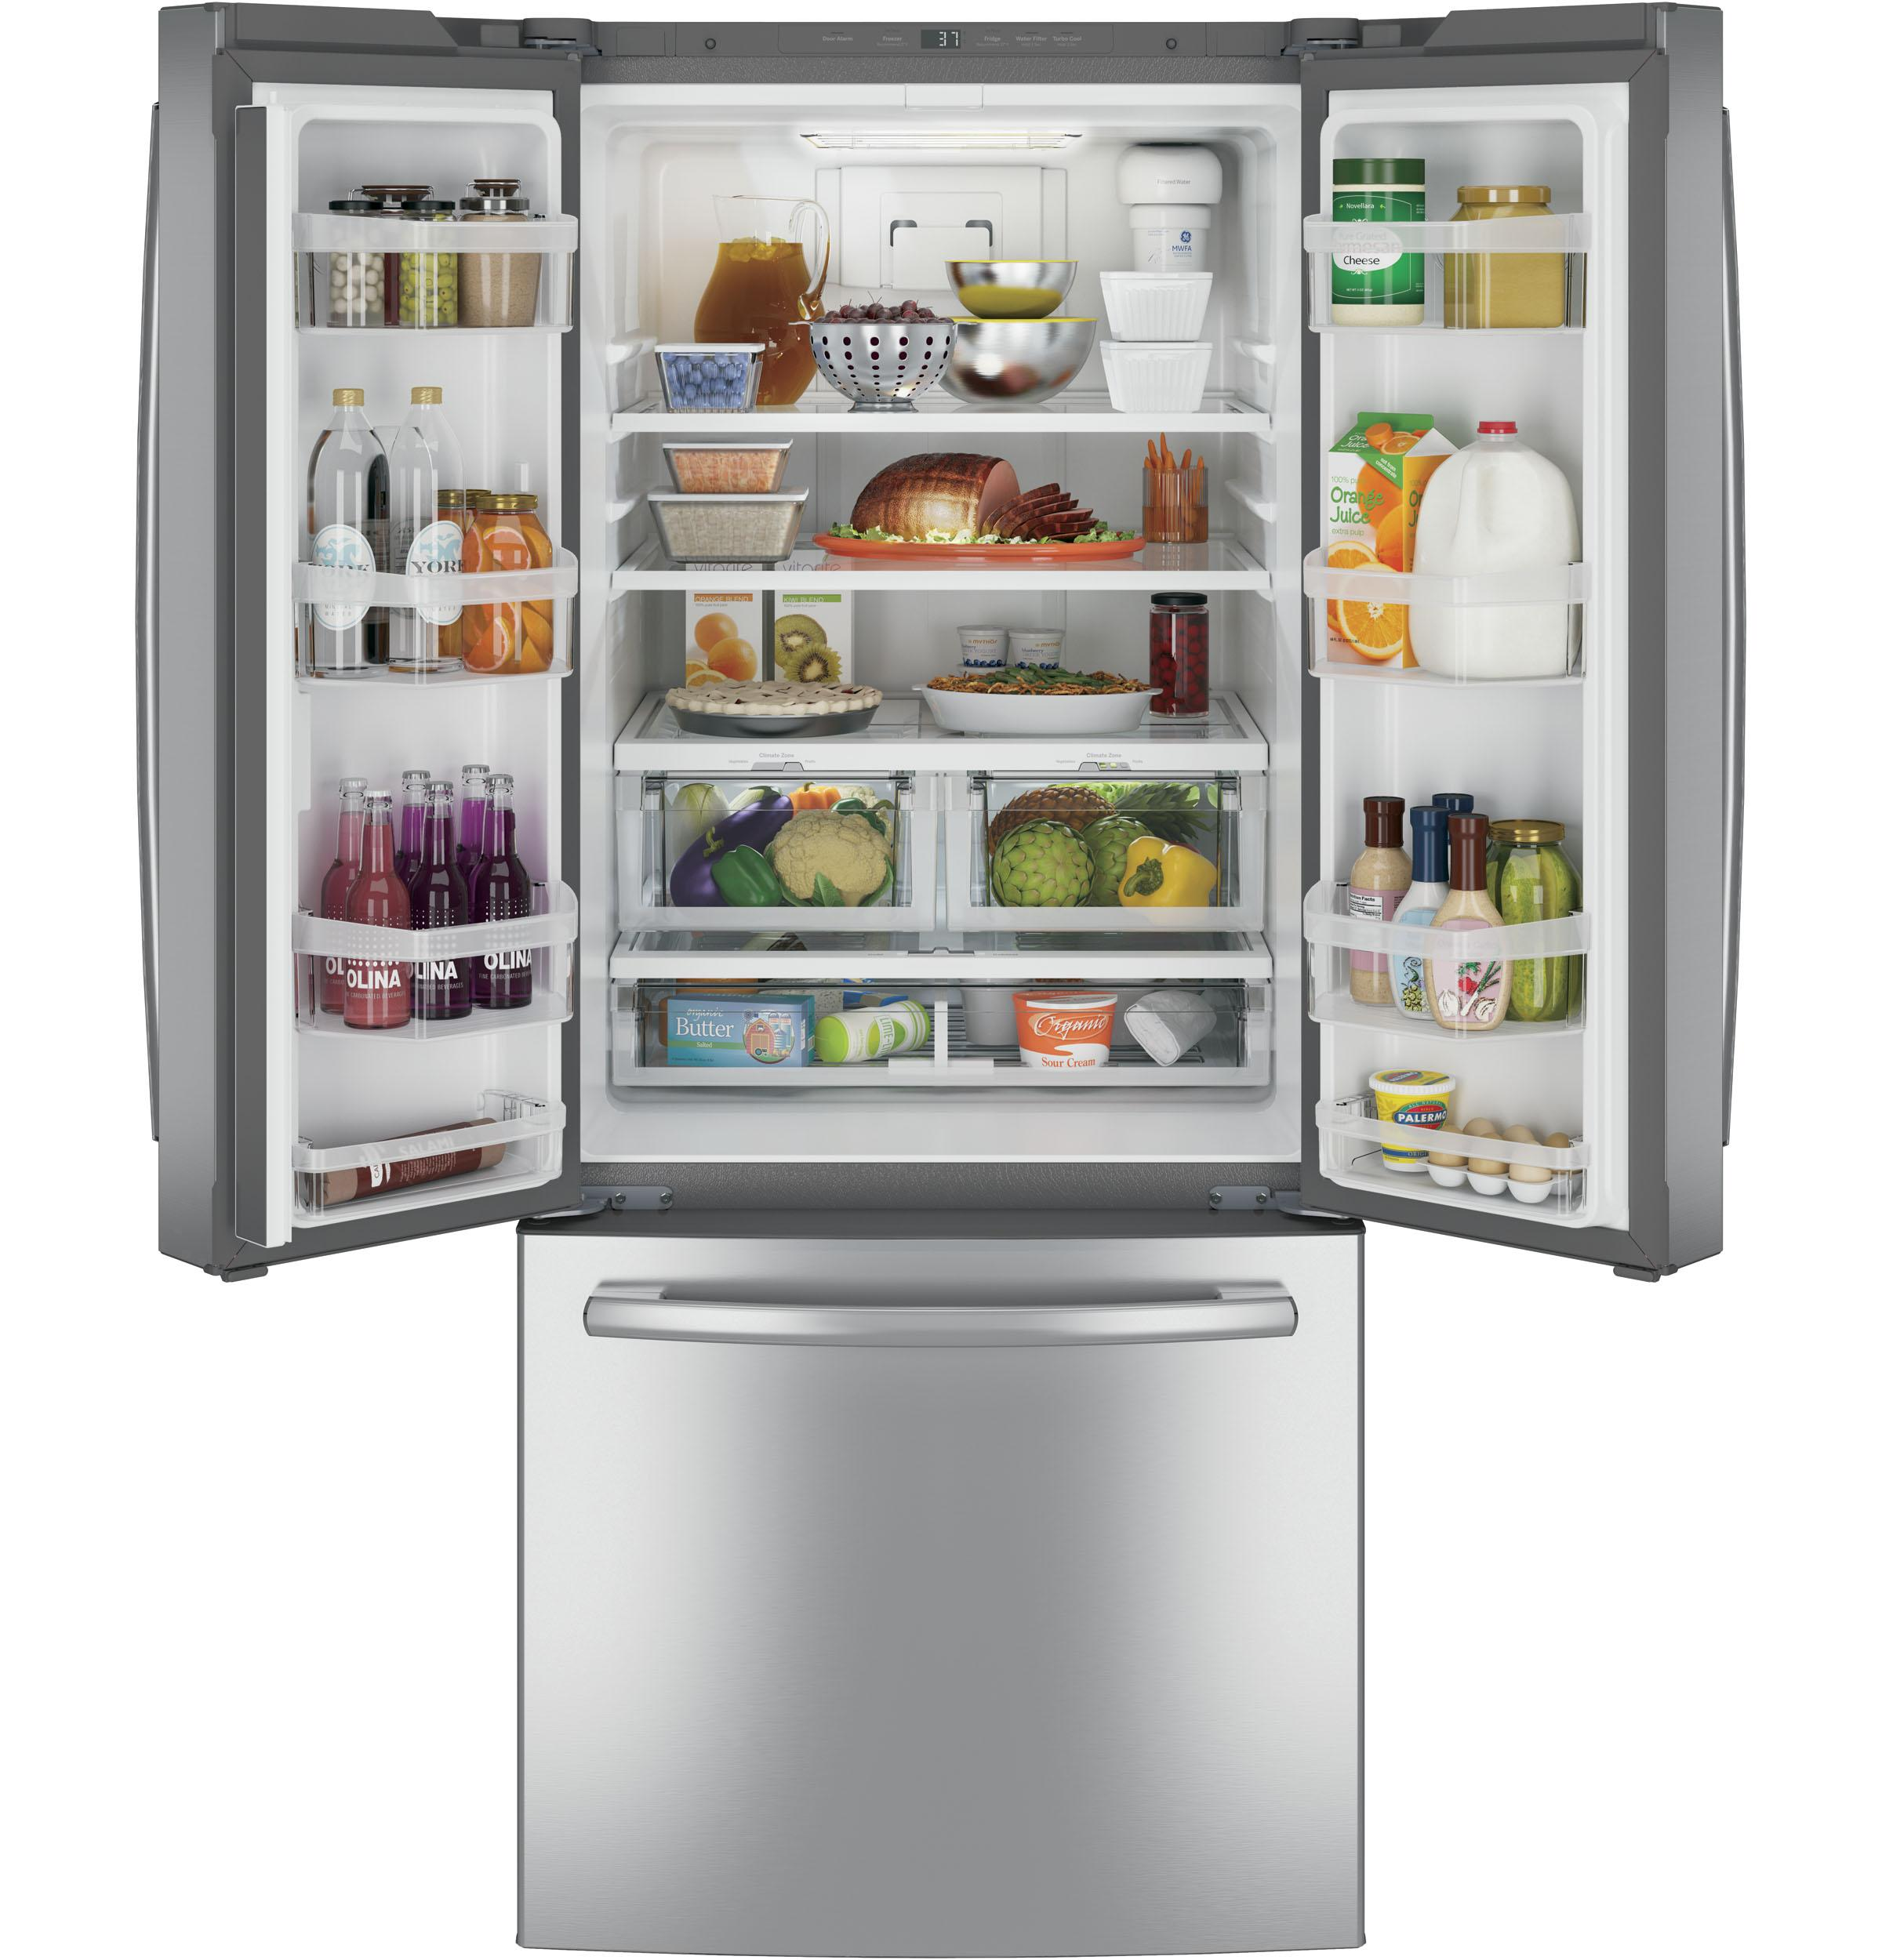 GE(R) ENERGY STAR(R) 20.8 Cu. Ft. French-Door Refrigerator